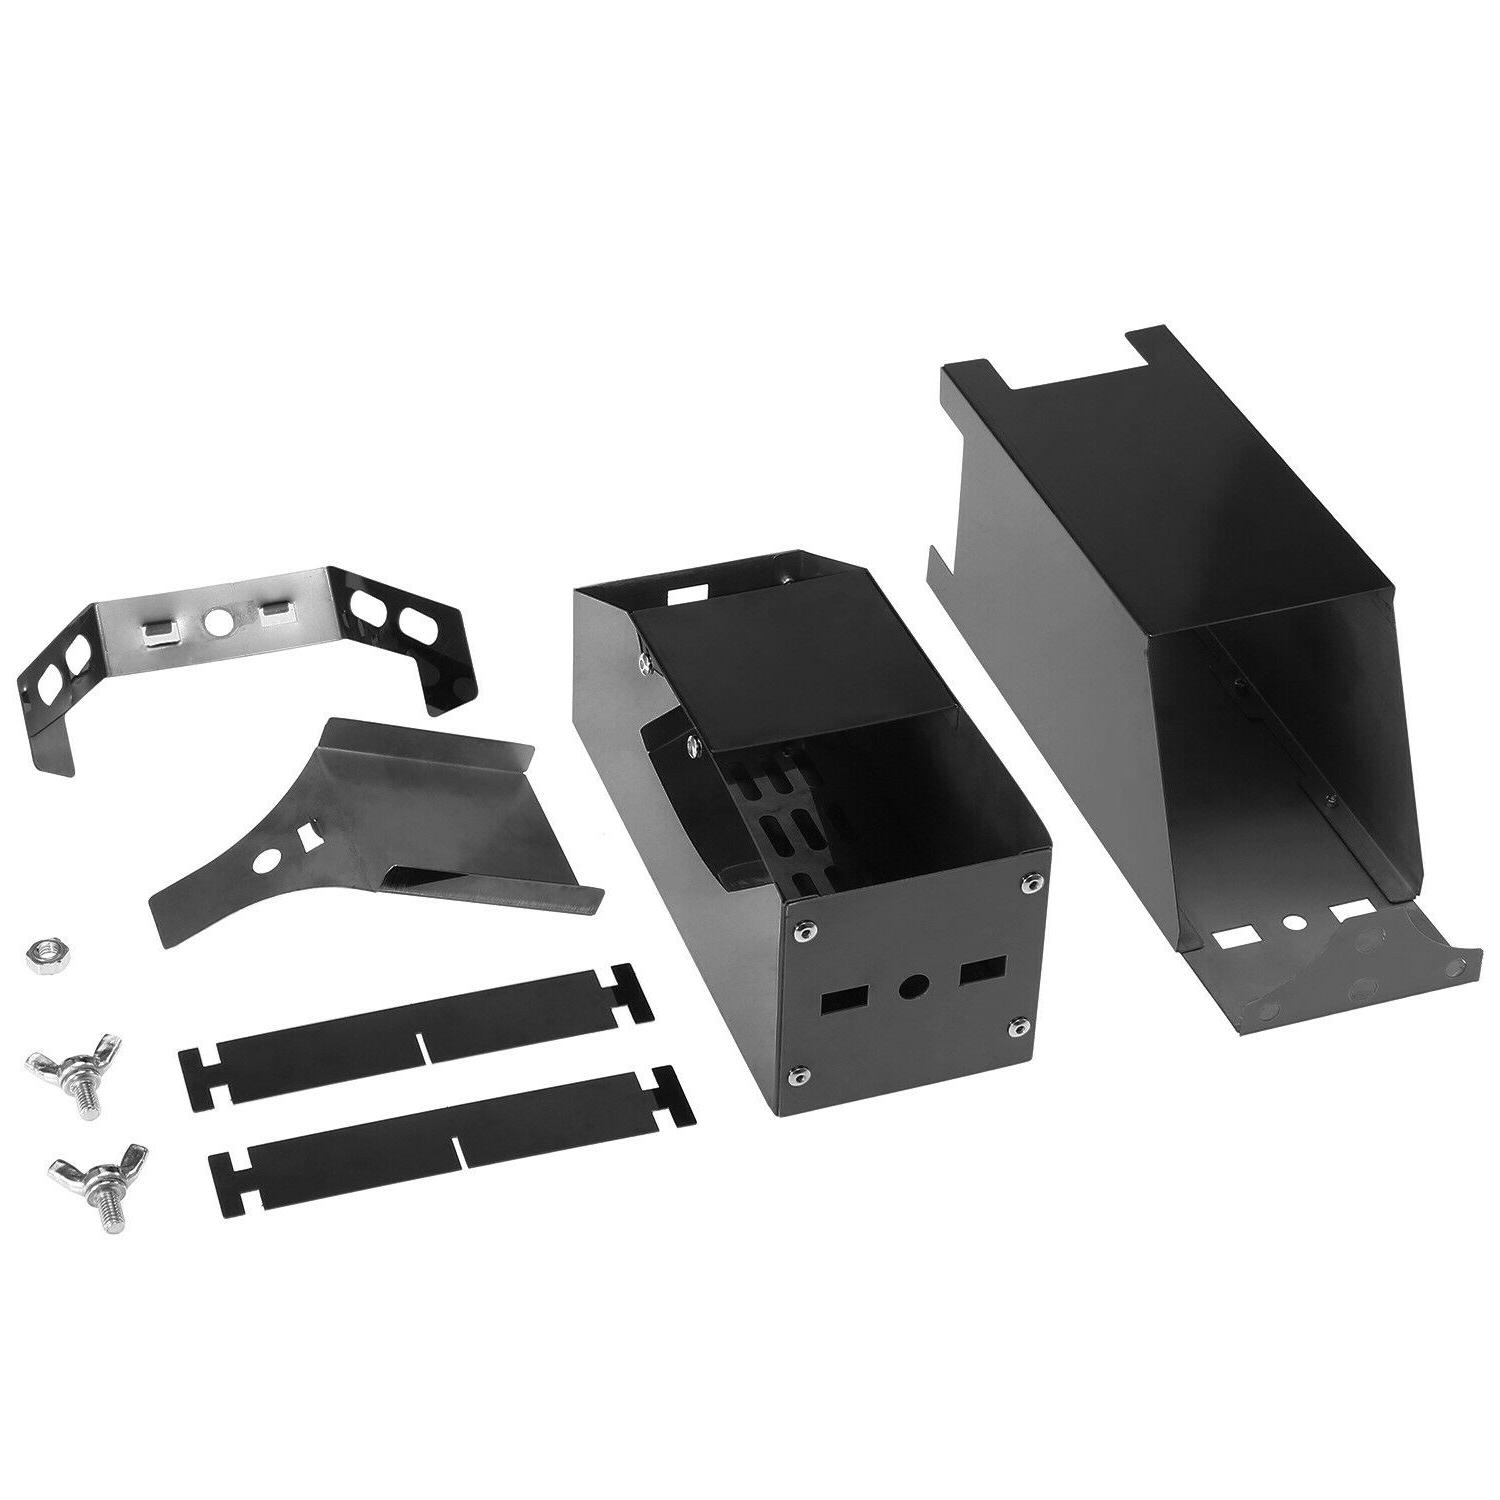 Foldable Plans Barbecue Cooker